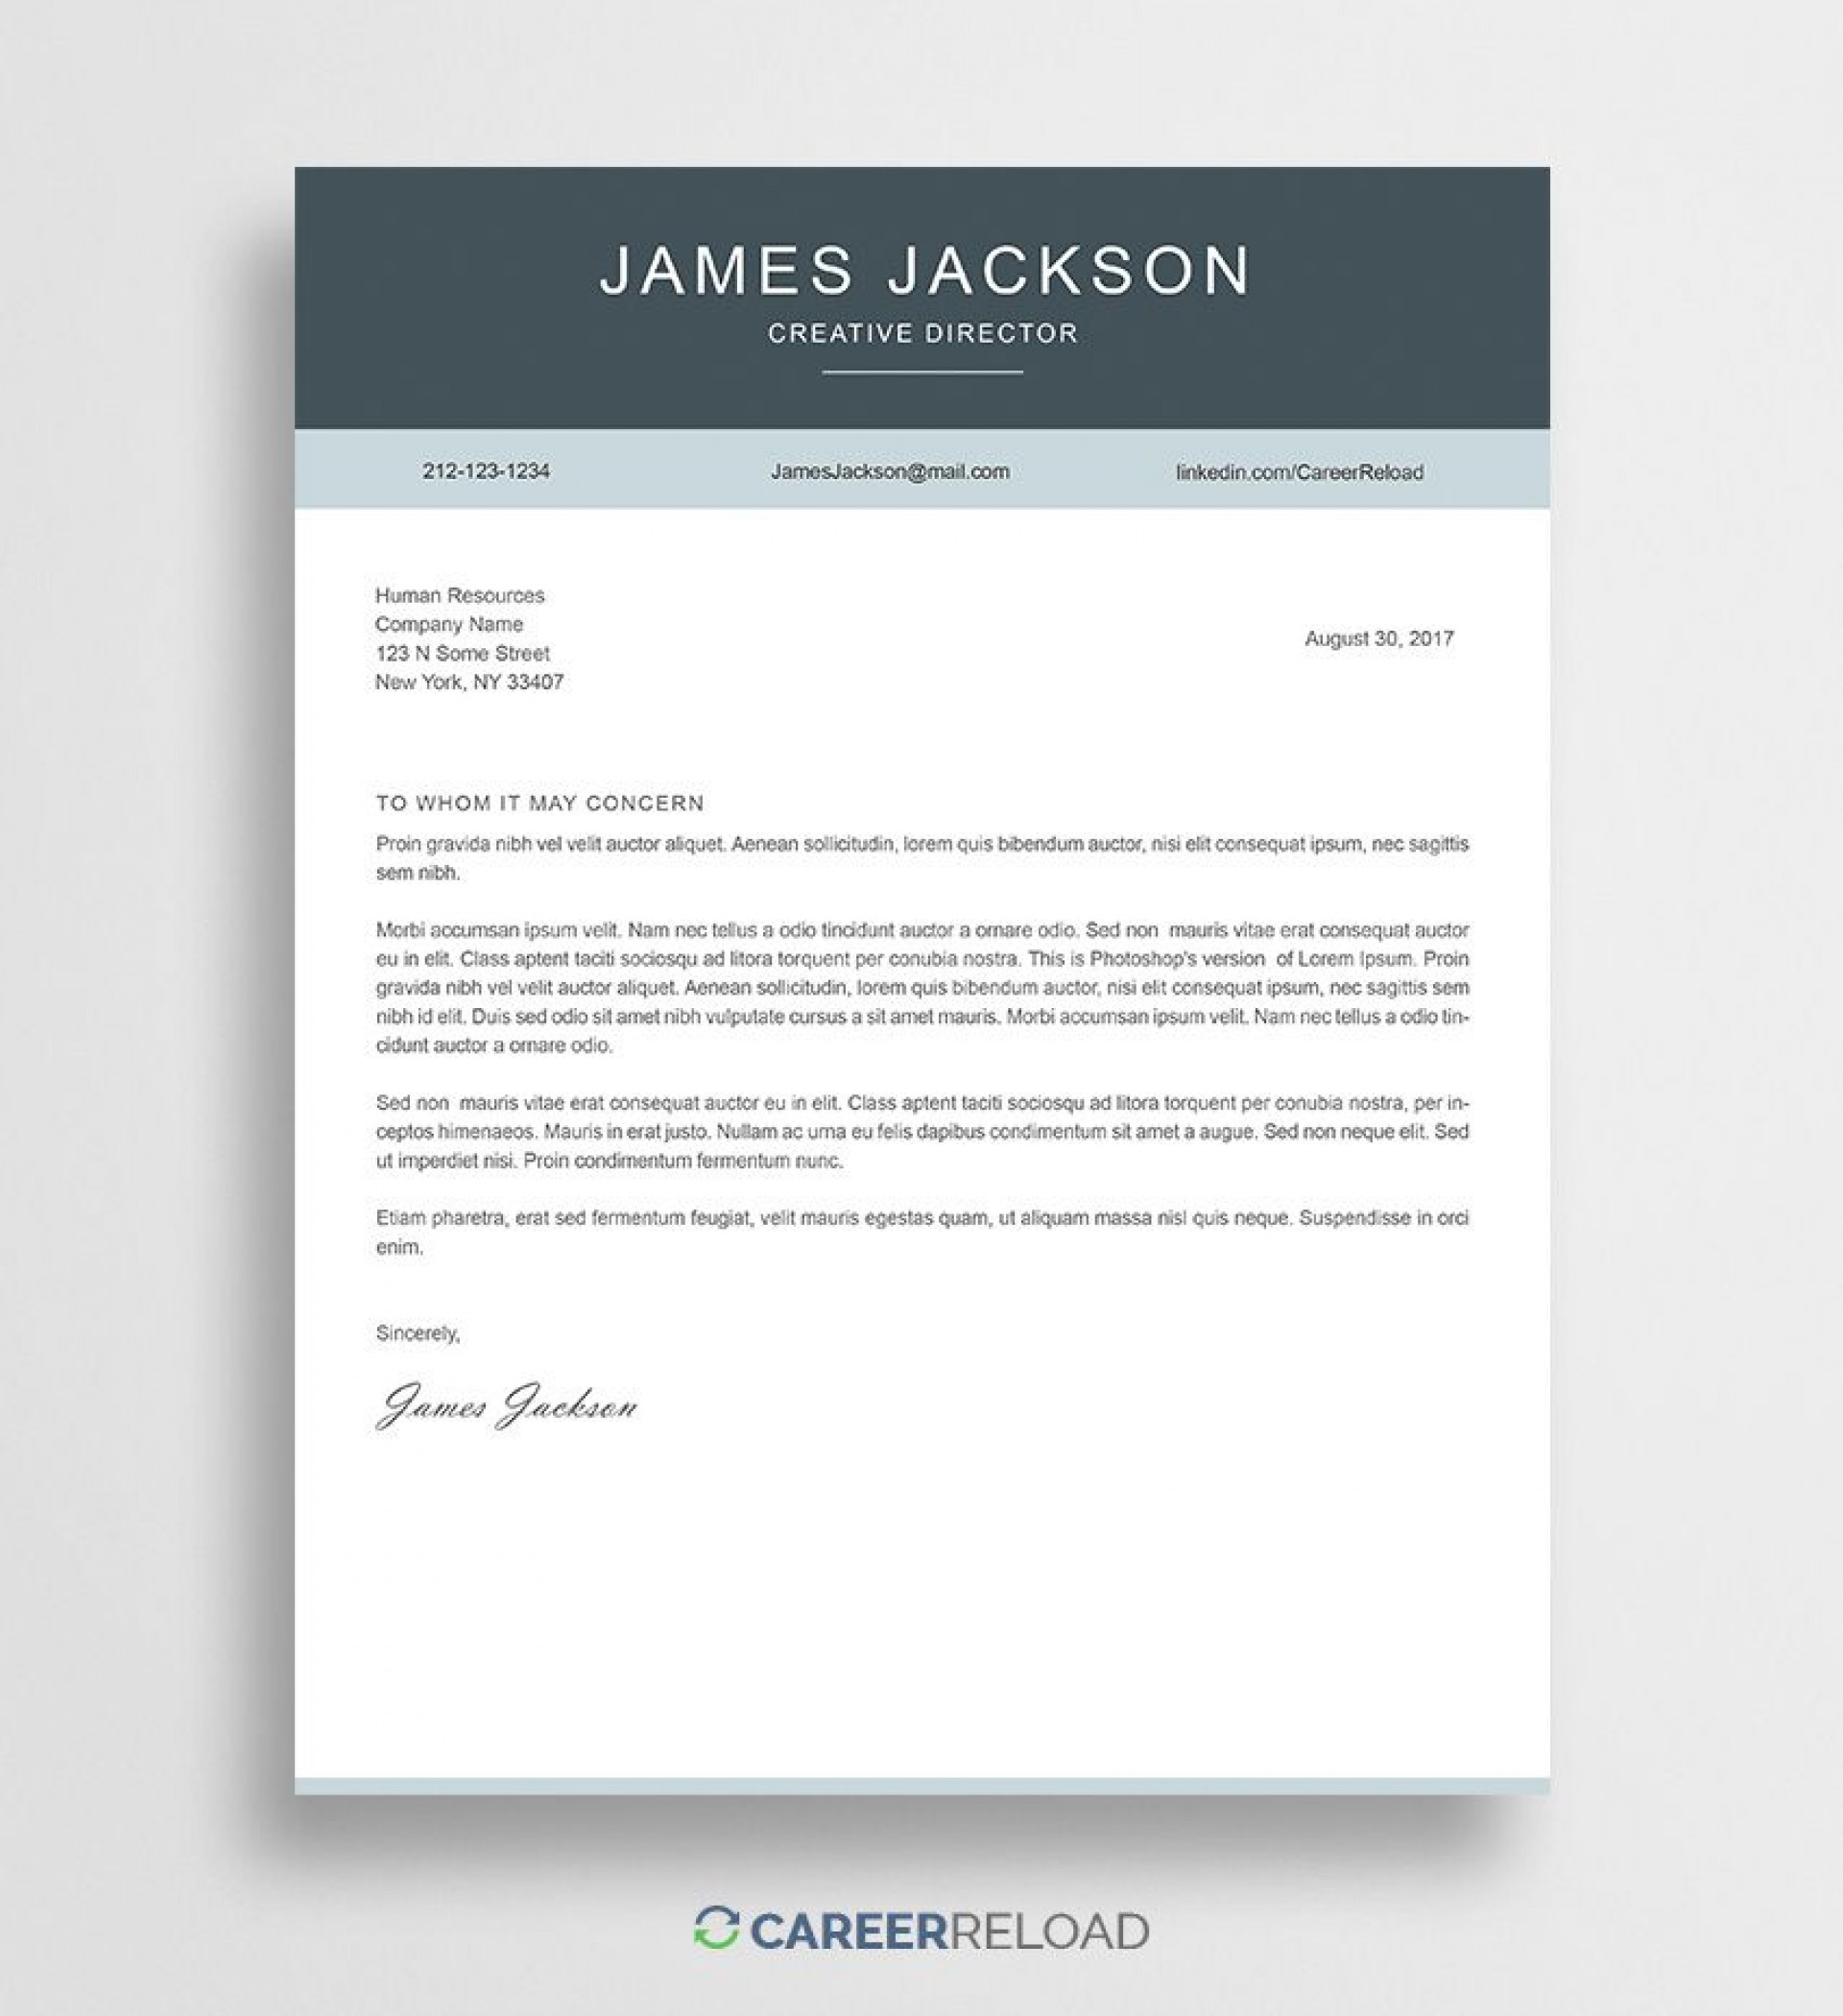 002 Striking Download Cover Letter Template Idea  Templates Free Microsoft Word1920